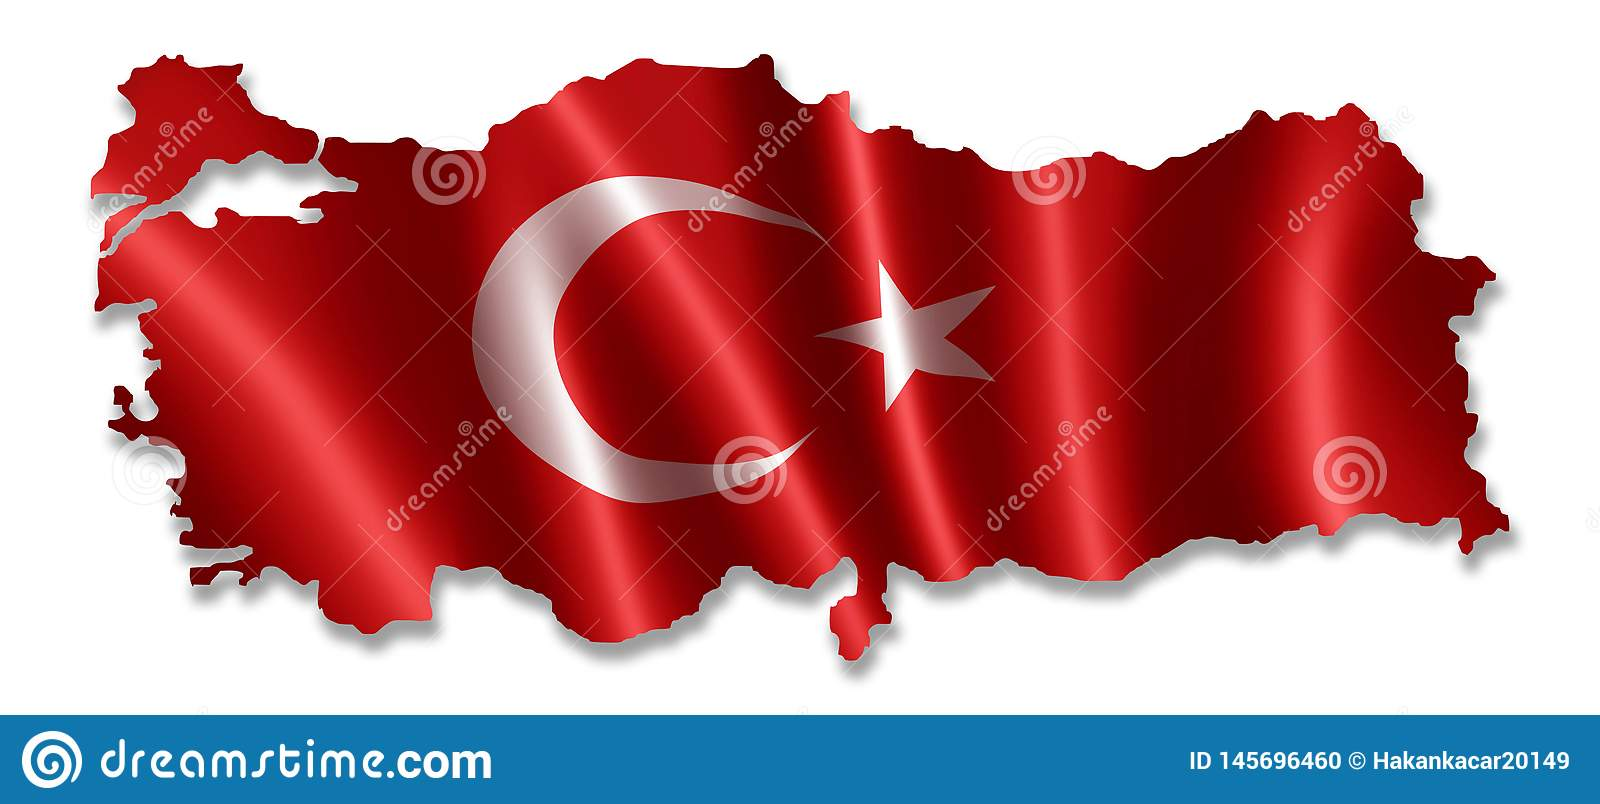 Turkey map with flag.